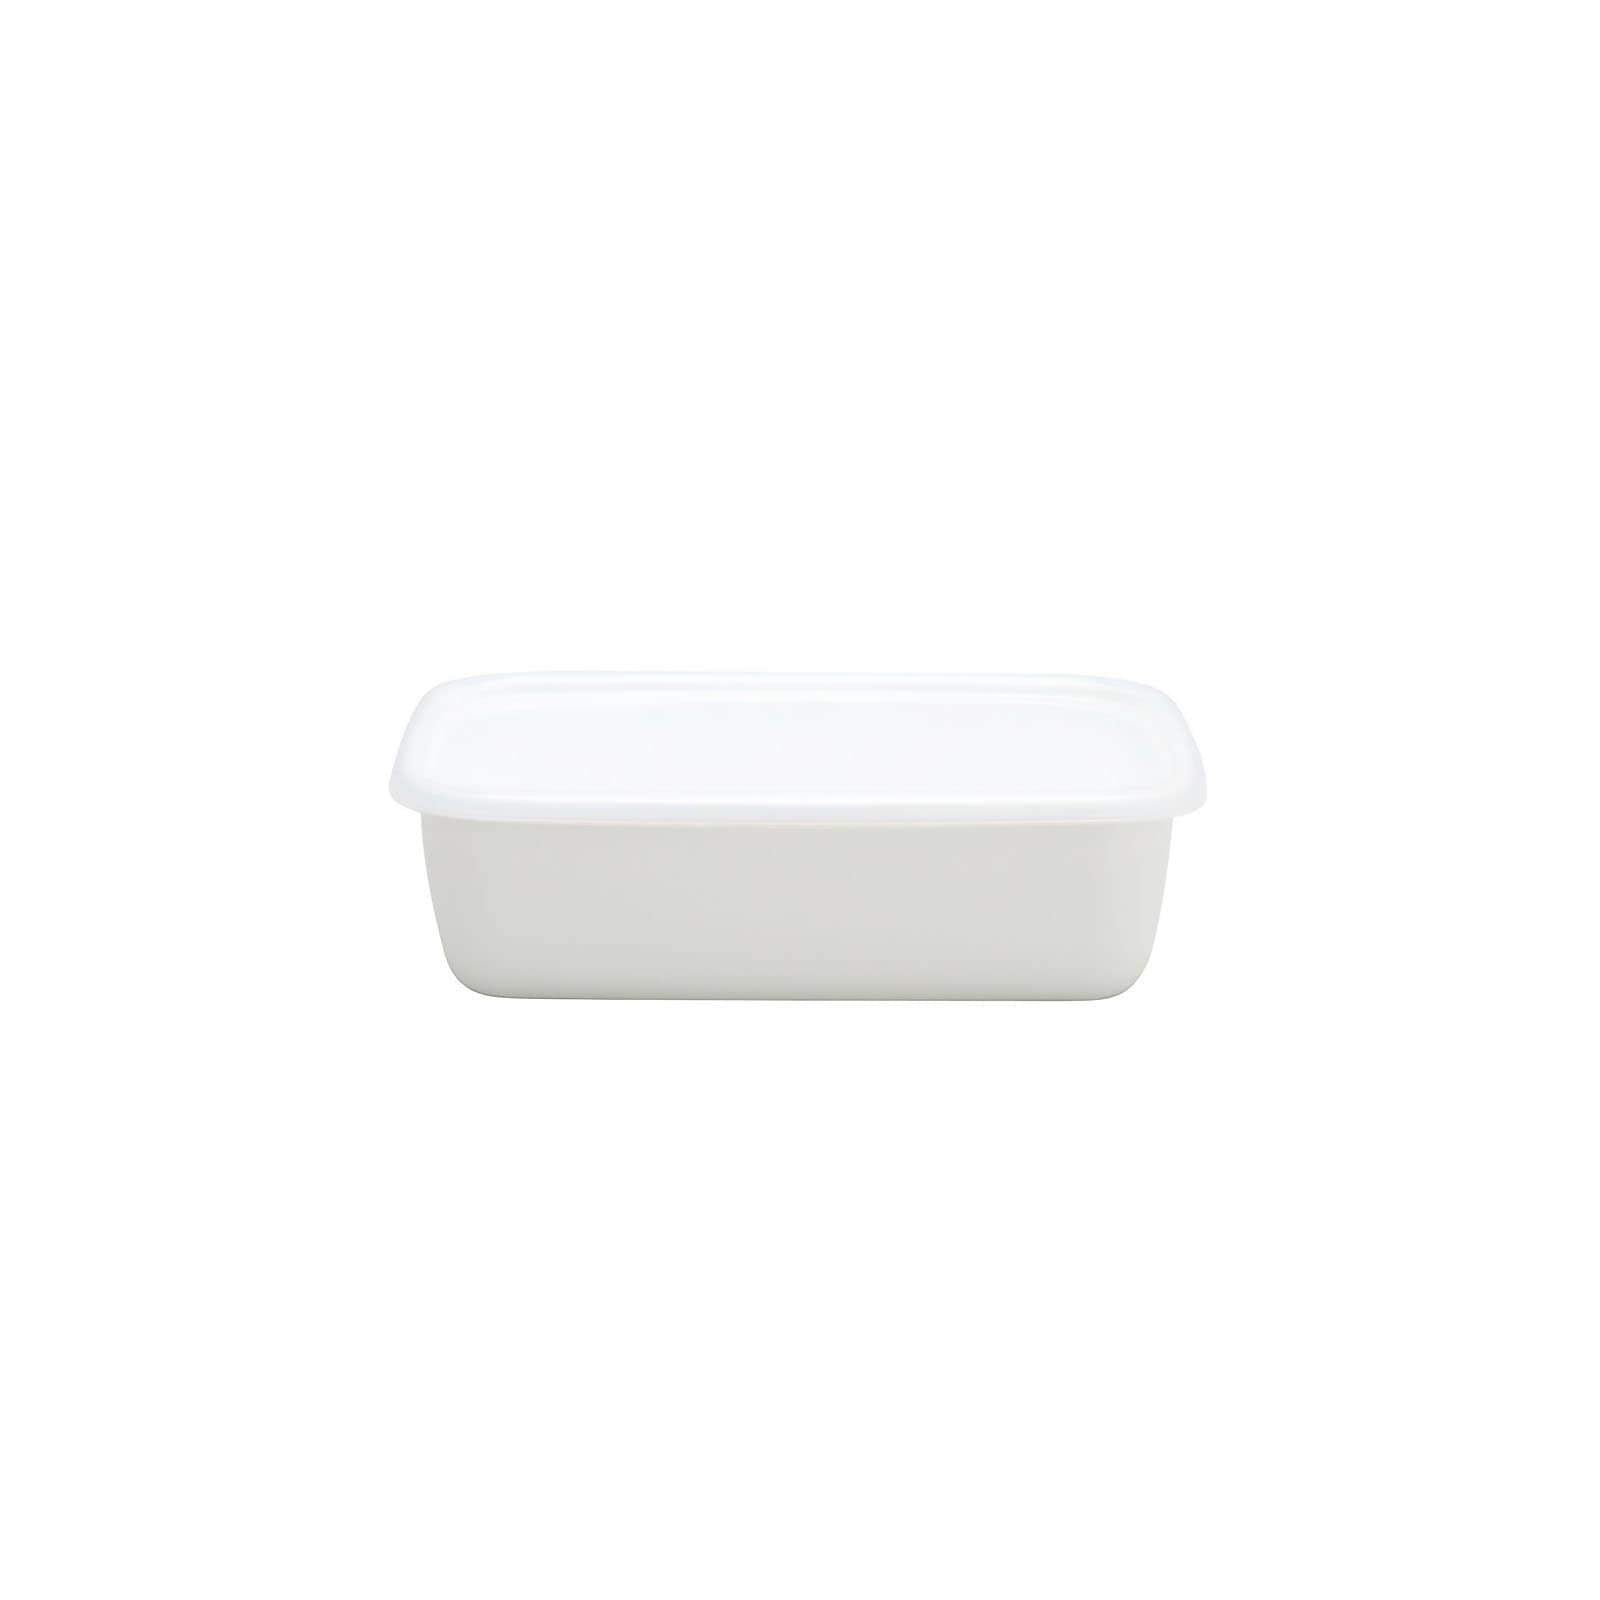 Noda Horo White Series Enamel Rectangle Deep Food Containers with Lid (4 Sizes) Small Food Containers